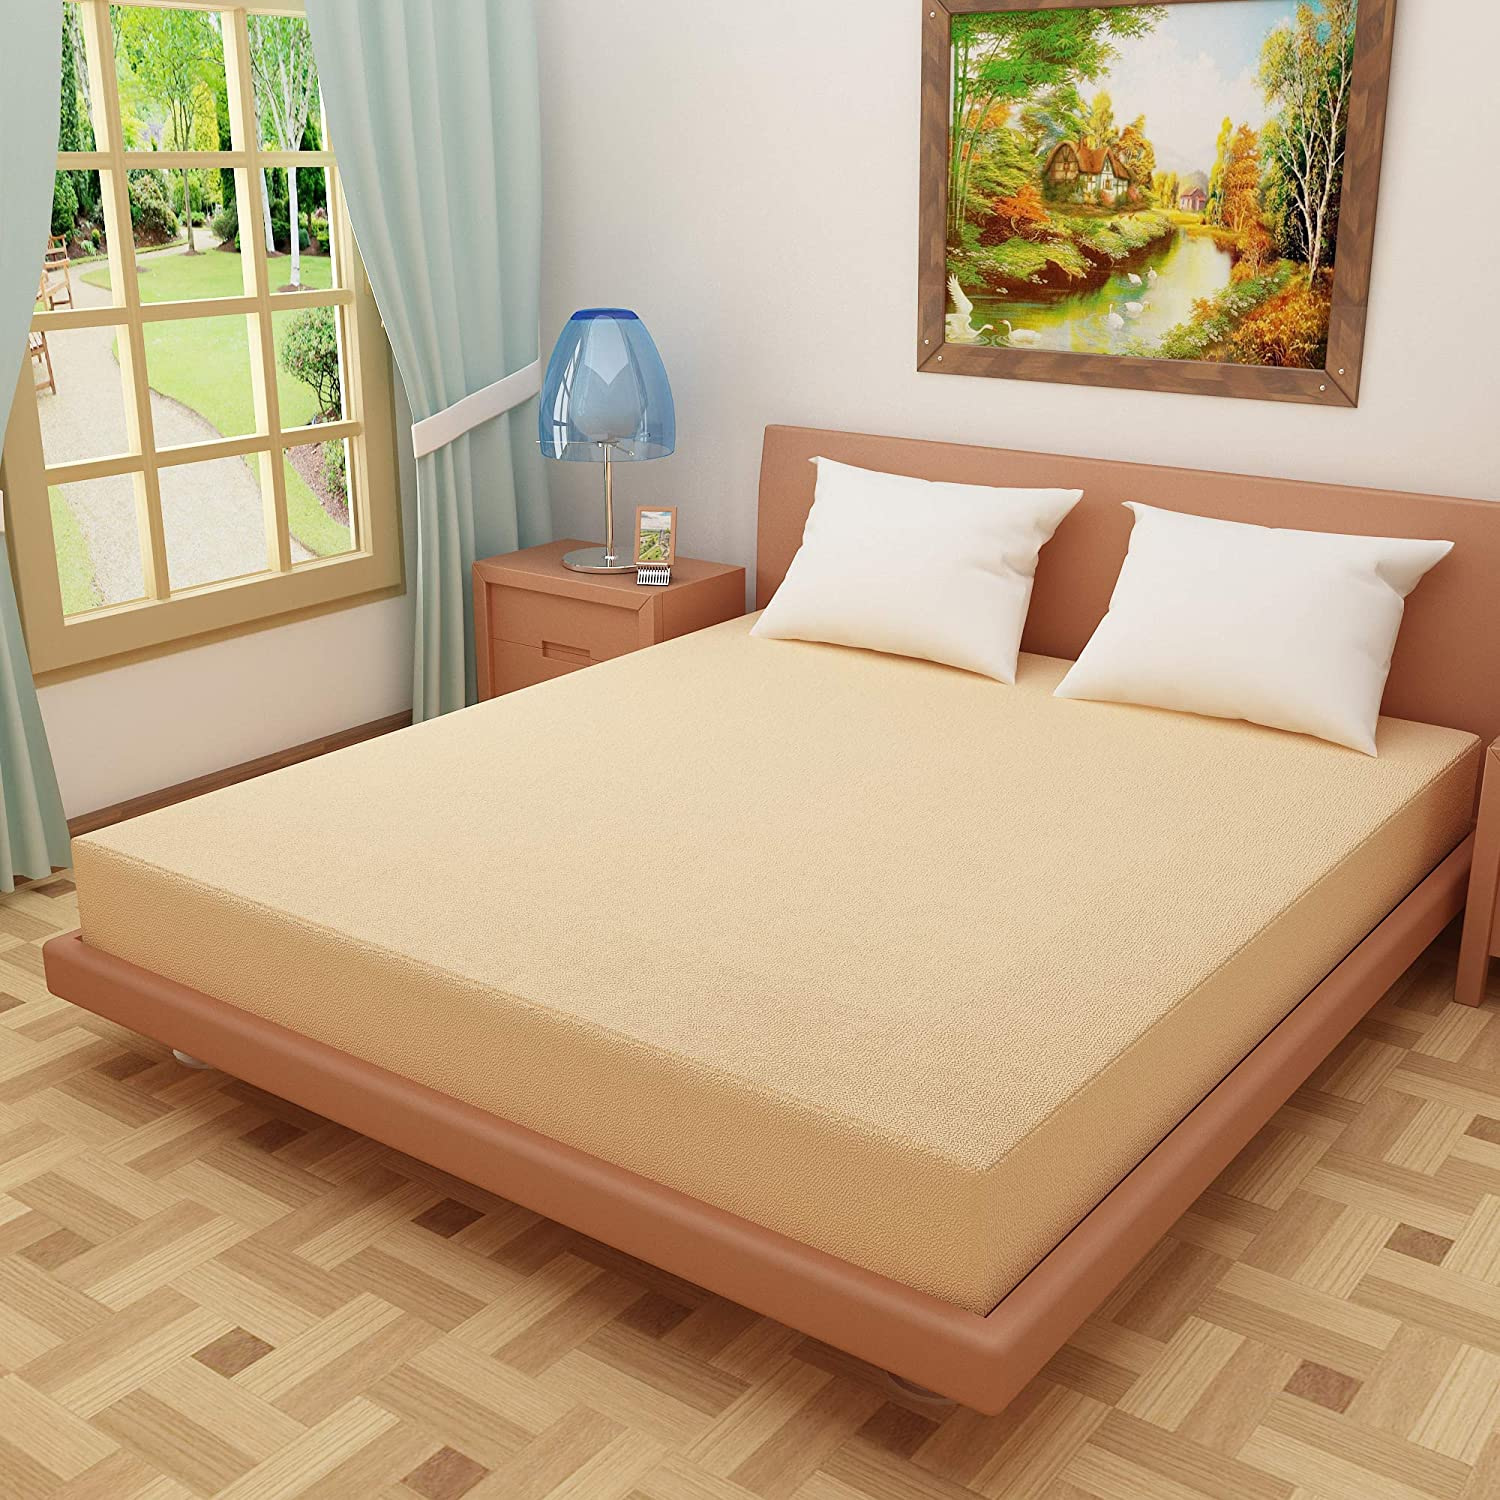 DREAM CARE Breathable and Waterproof Terry Cloth Elastic Fitted Mattress Protector for King Size Bed (78″x72″(6.5×6 Feet), Beige)